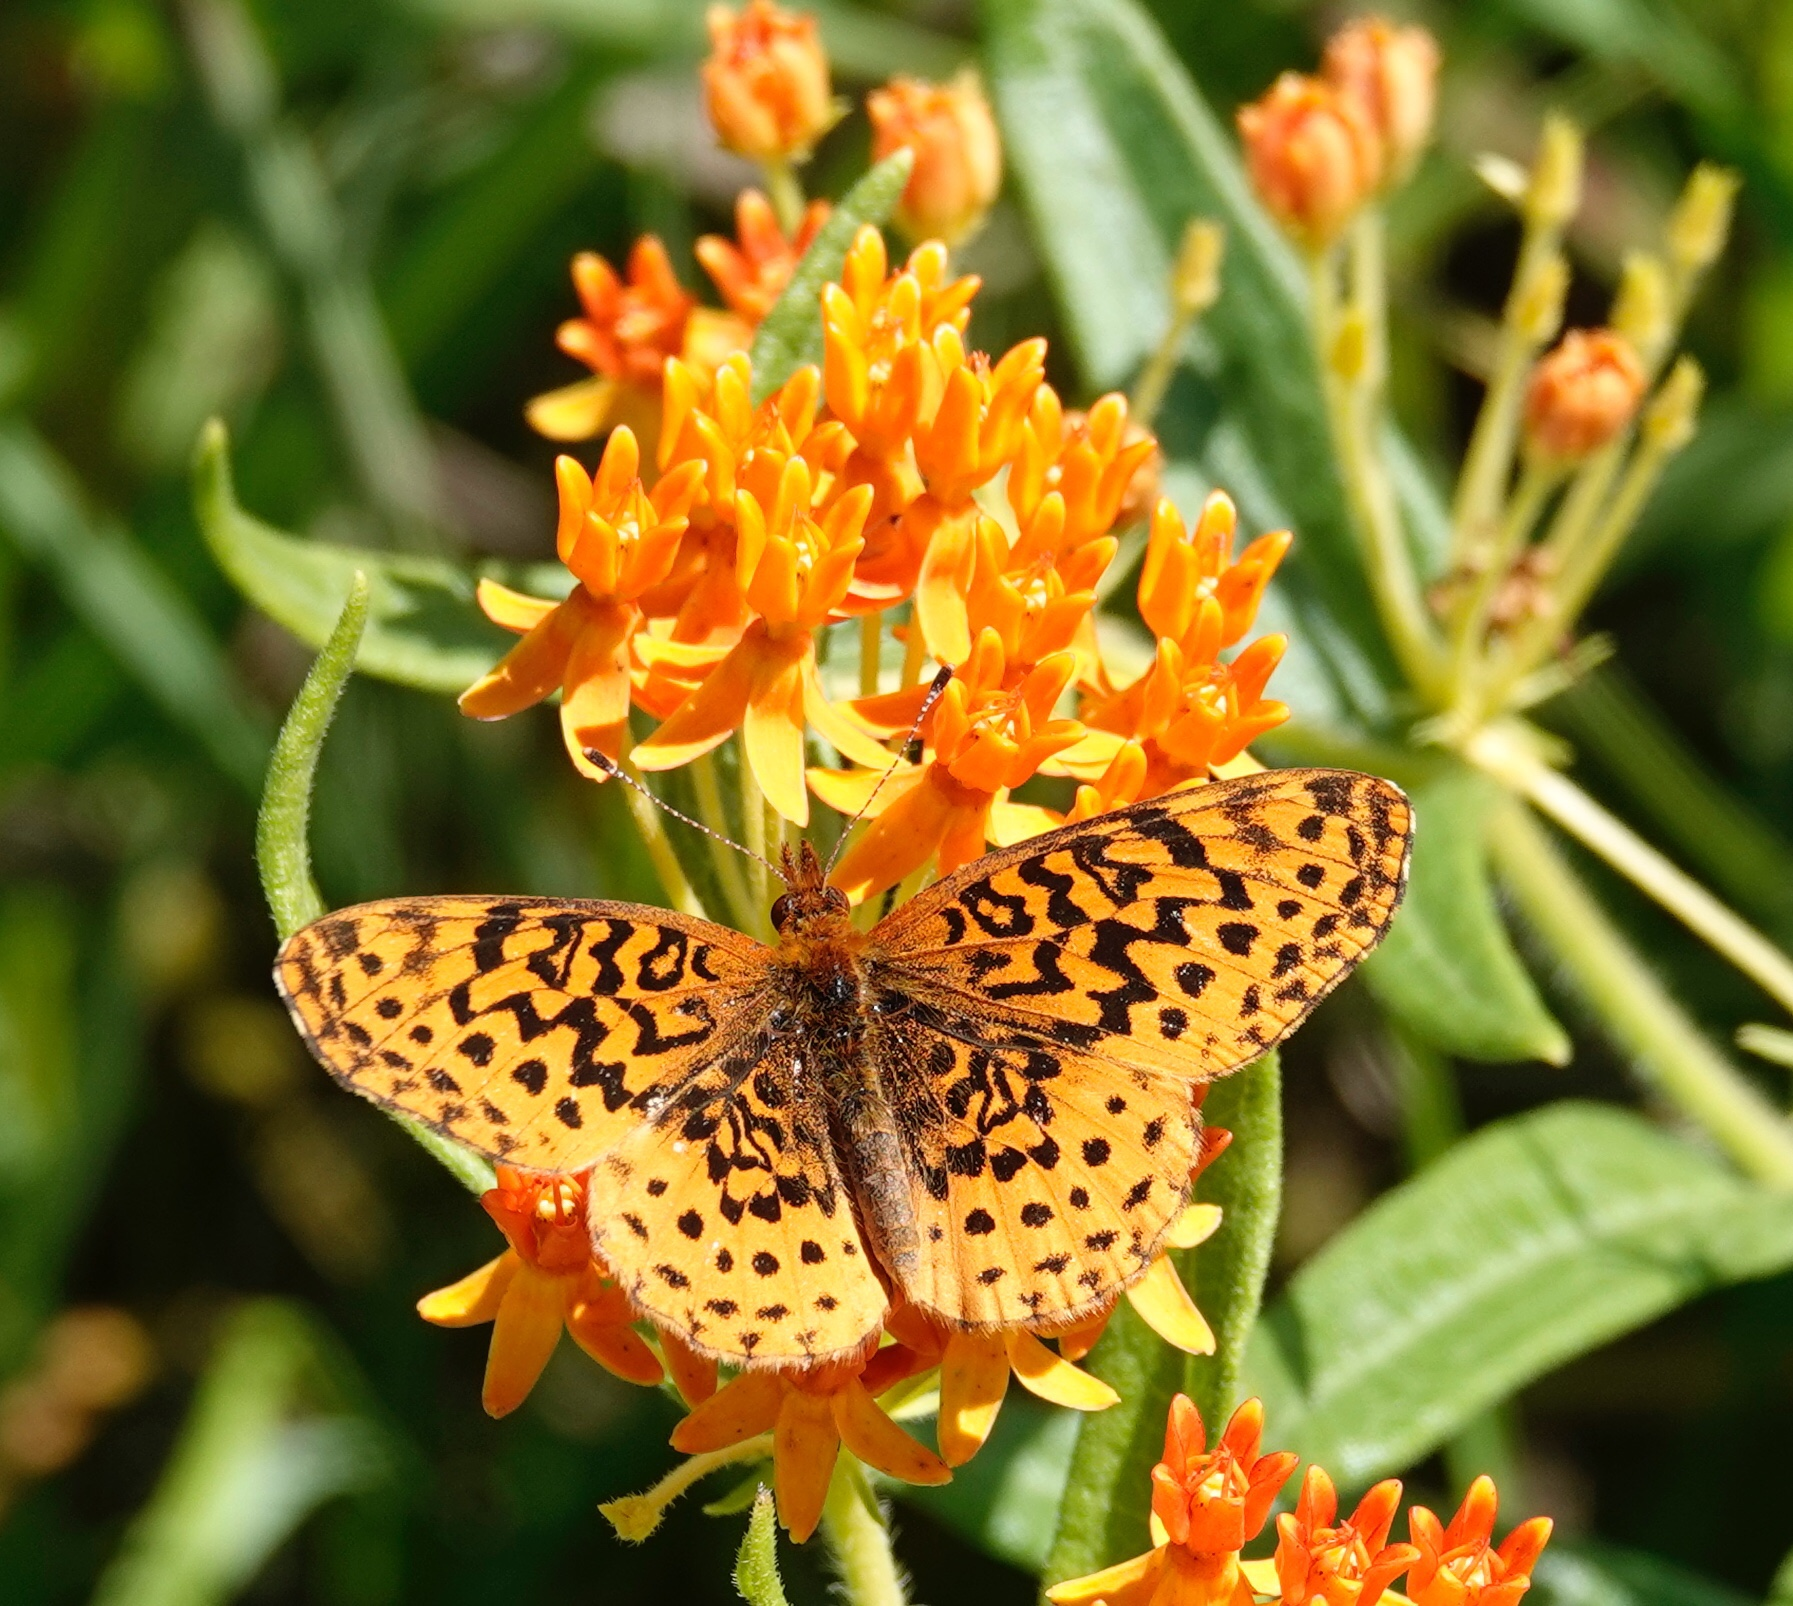 A meadow fritillary on butterfly weed.